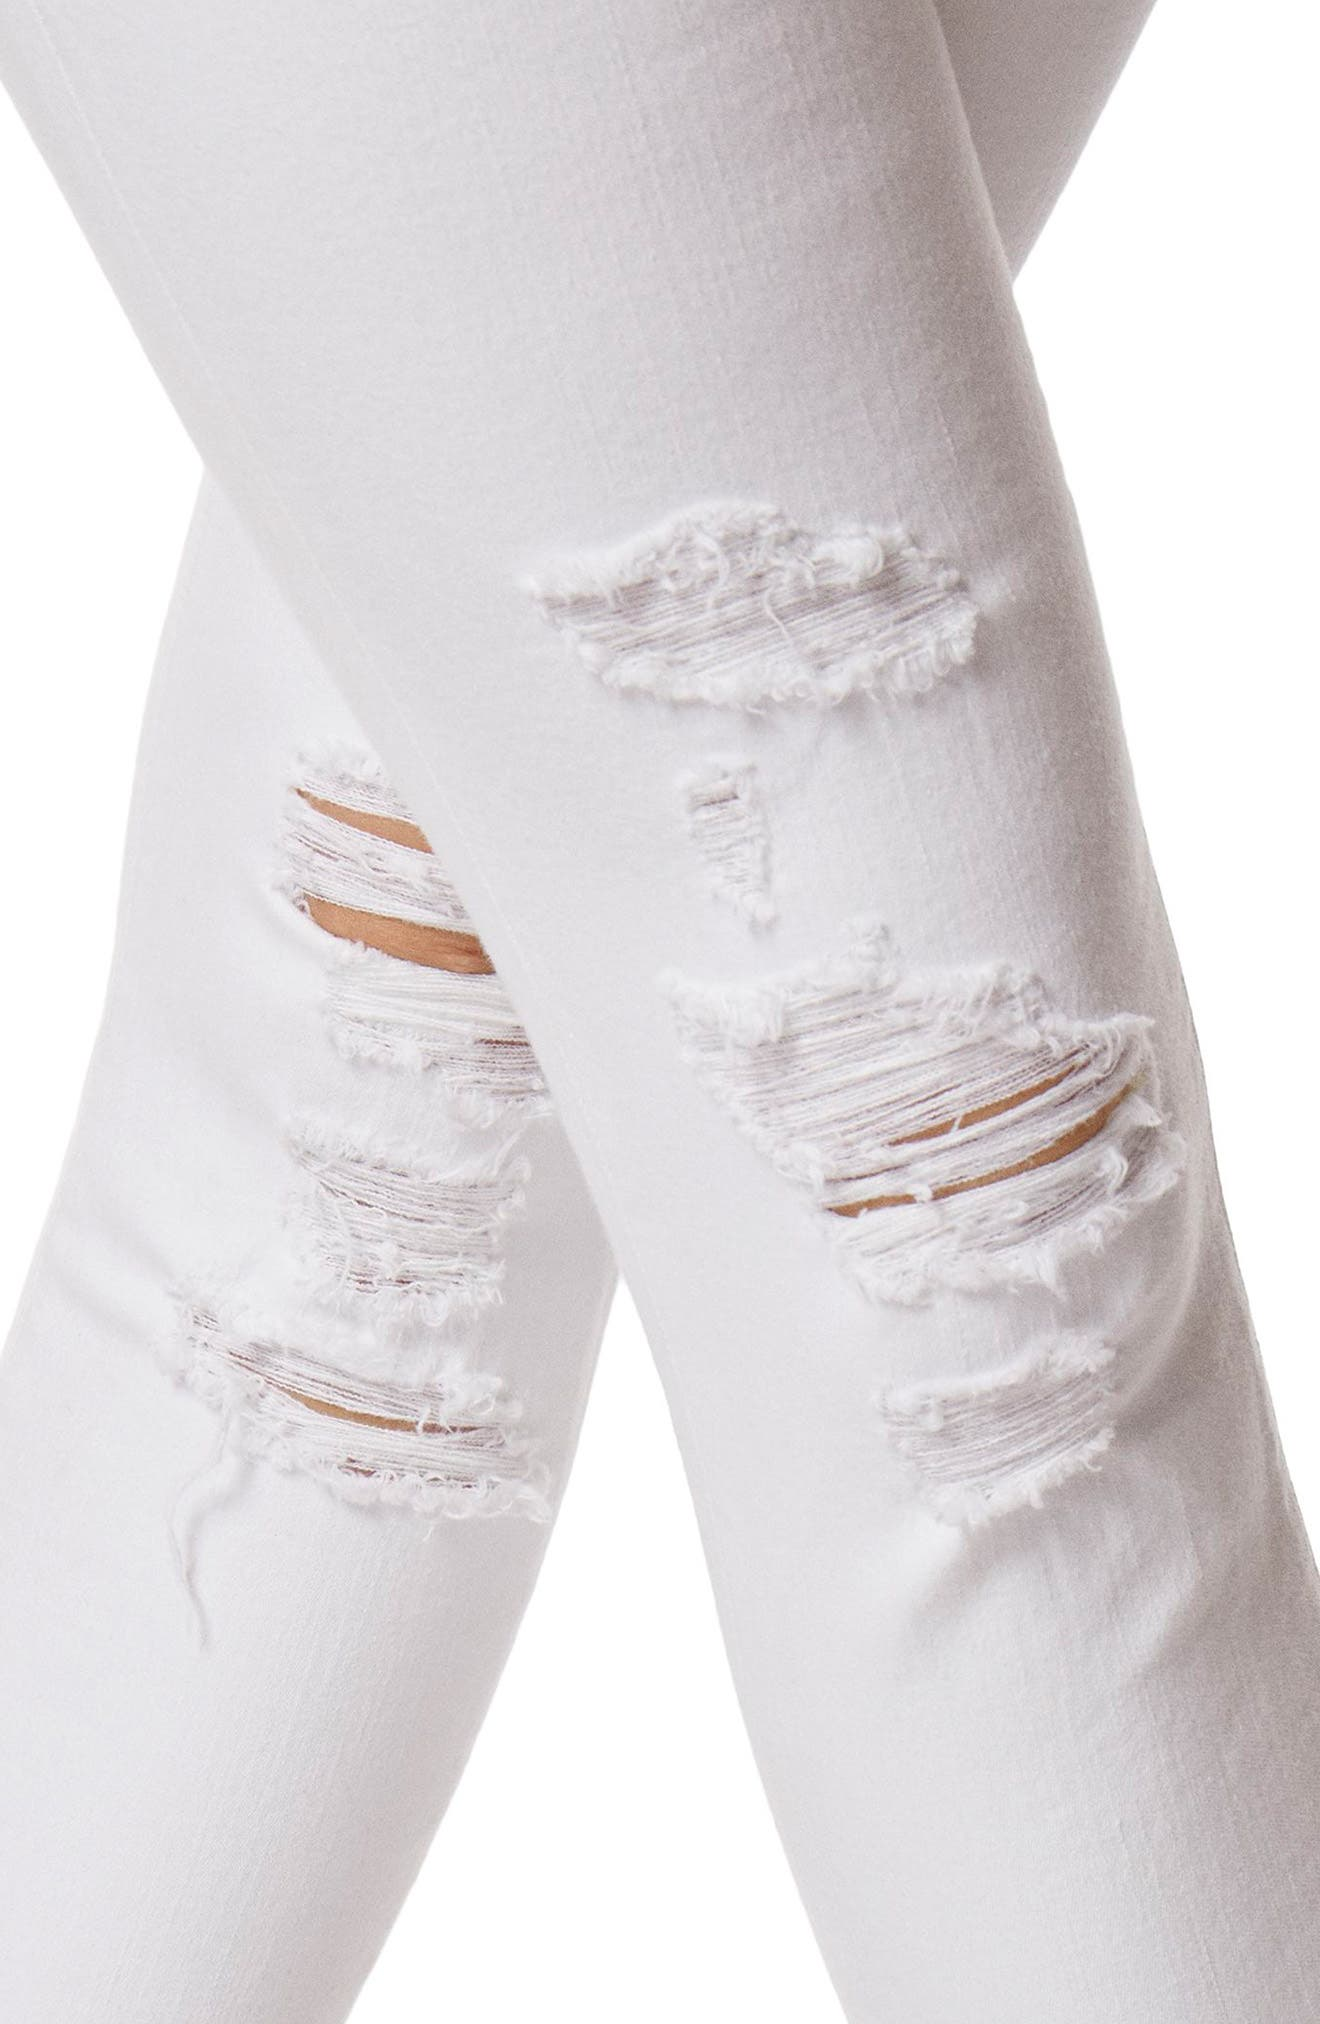 9326 Low Rise Crop Skinny Jeans,                             Alternate thumbnail 6, color,                             Demented White Destructed